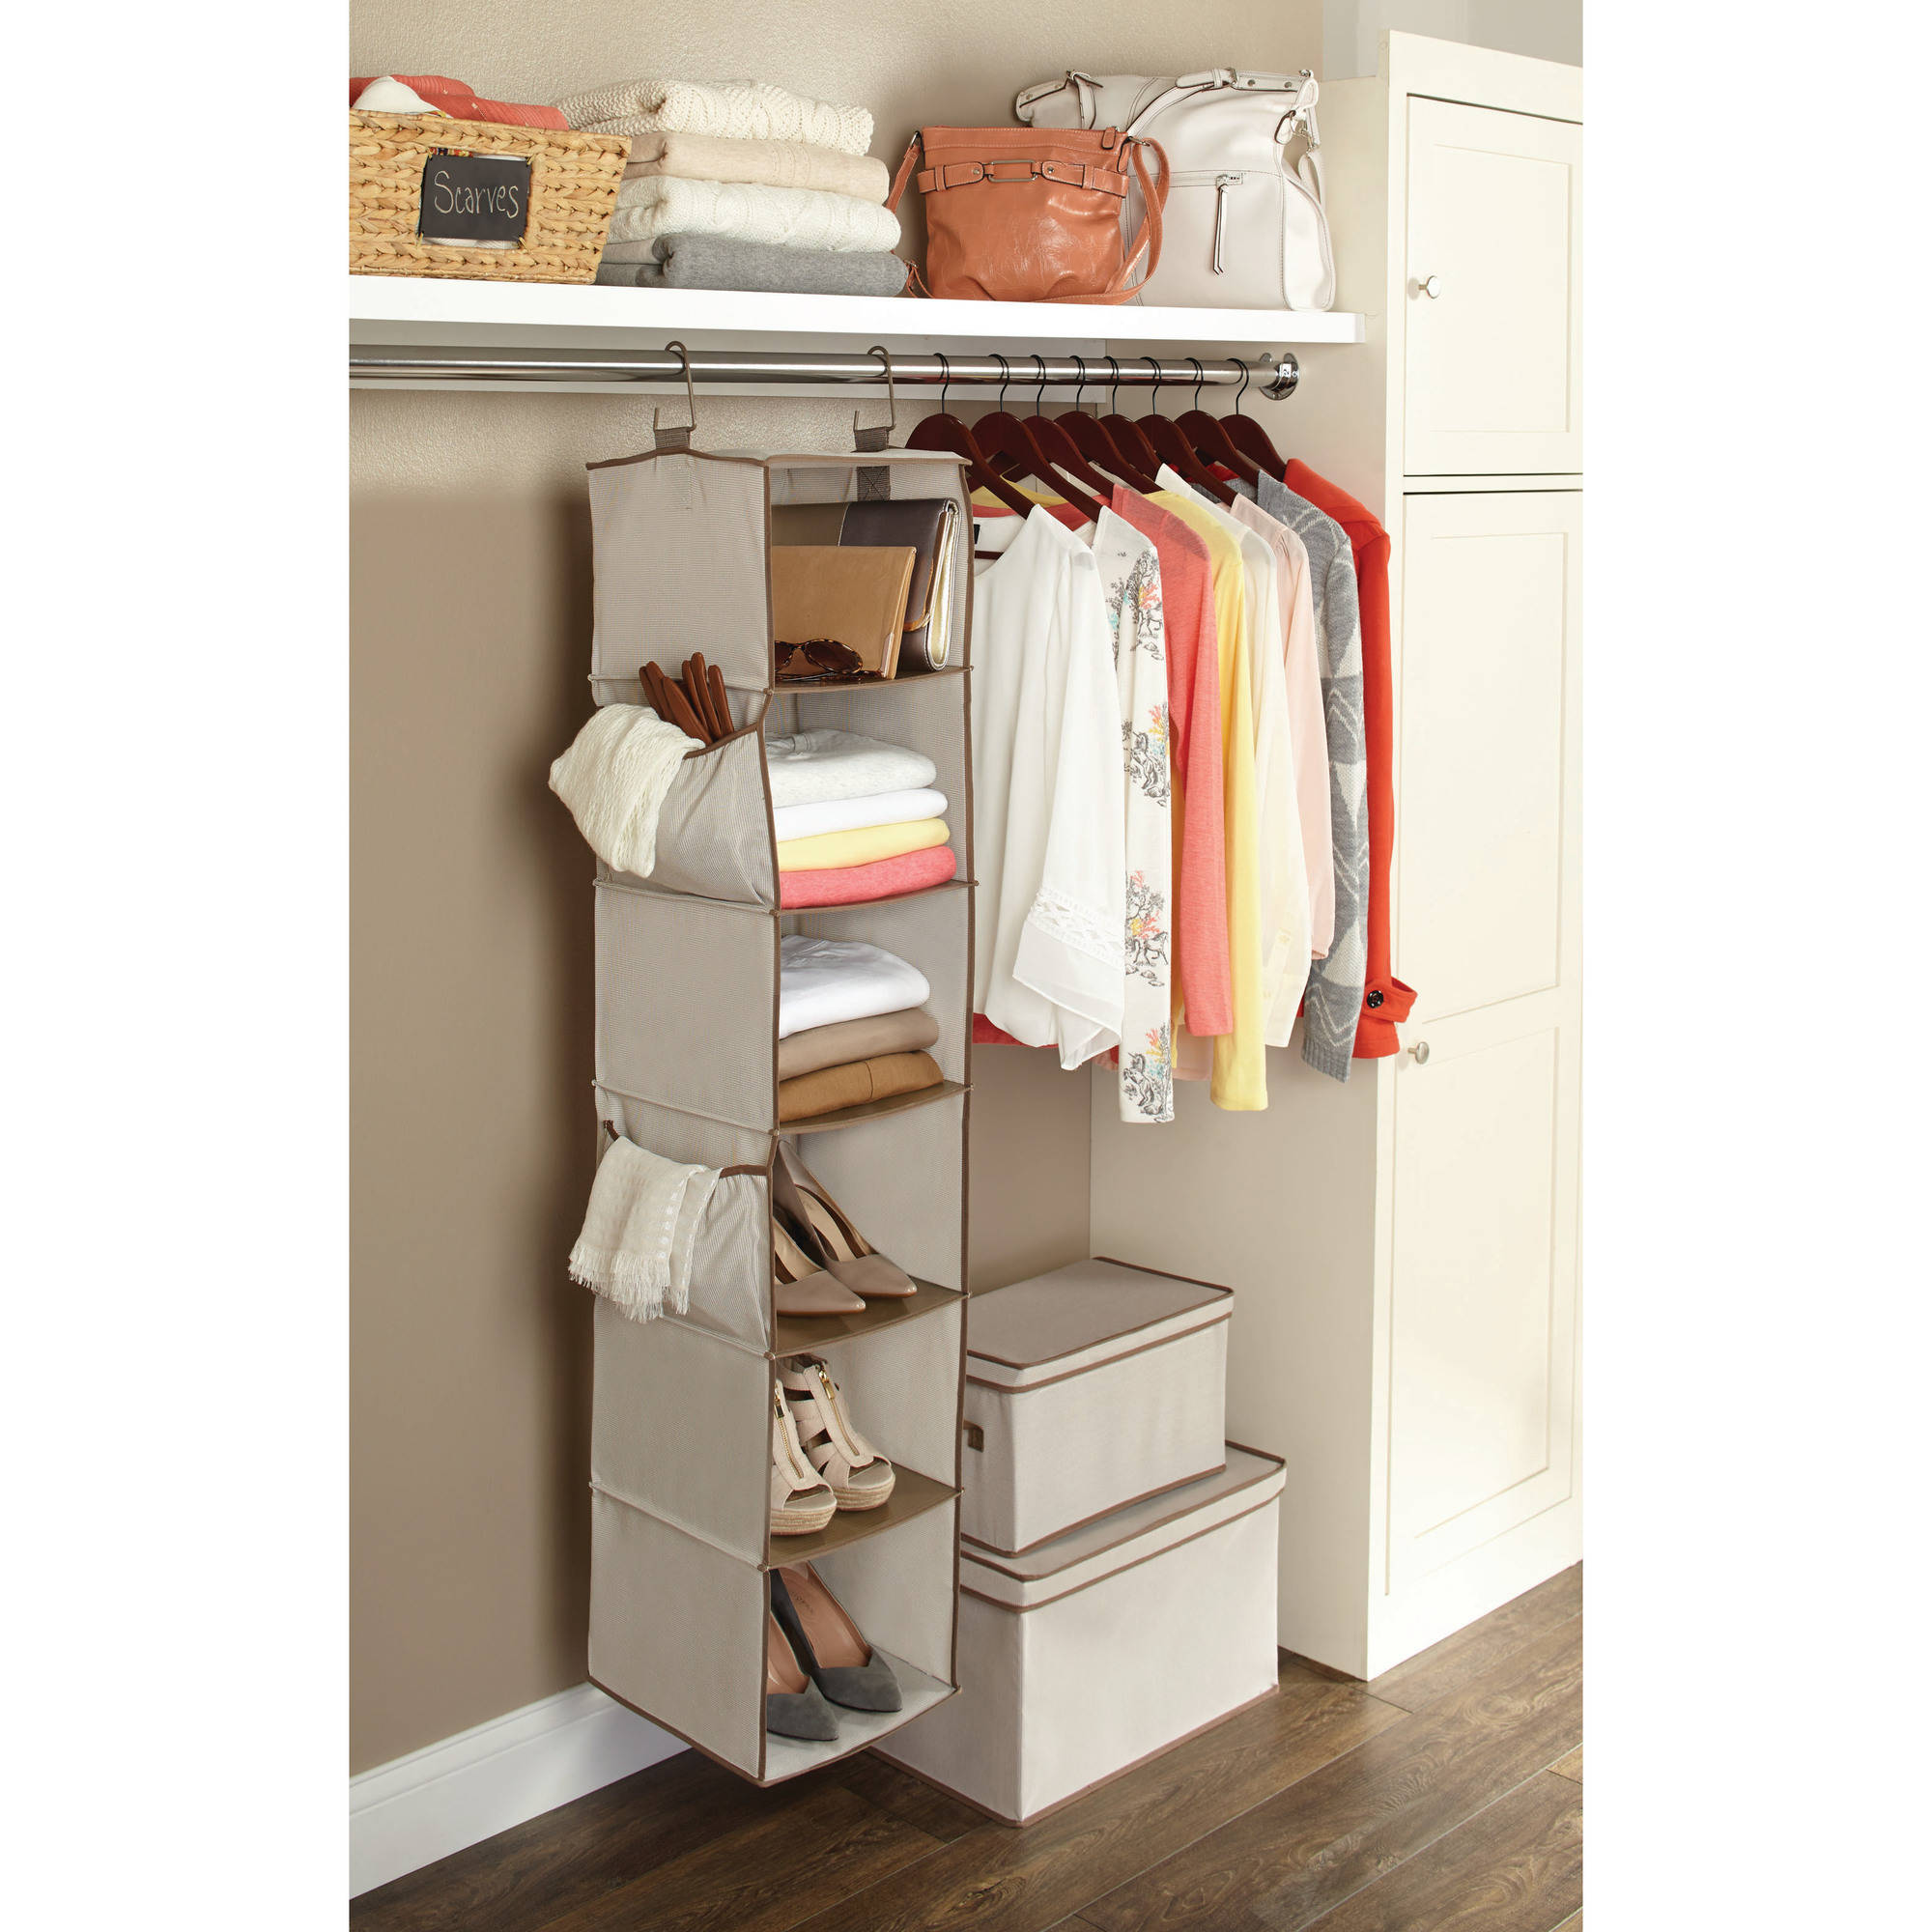 Better homes and gardens 6 shelf hanging closet organizer